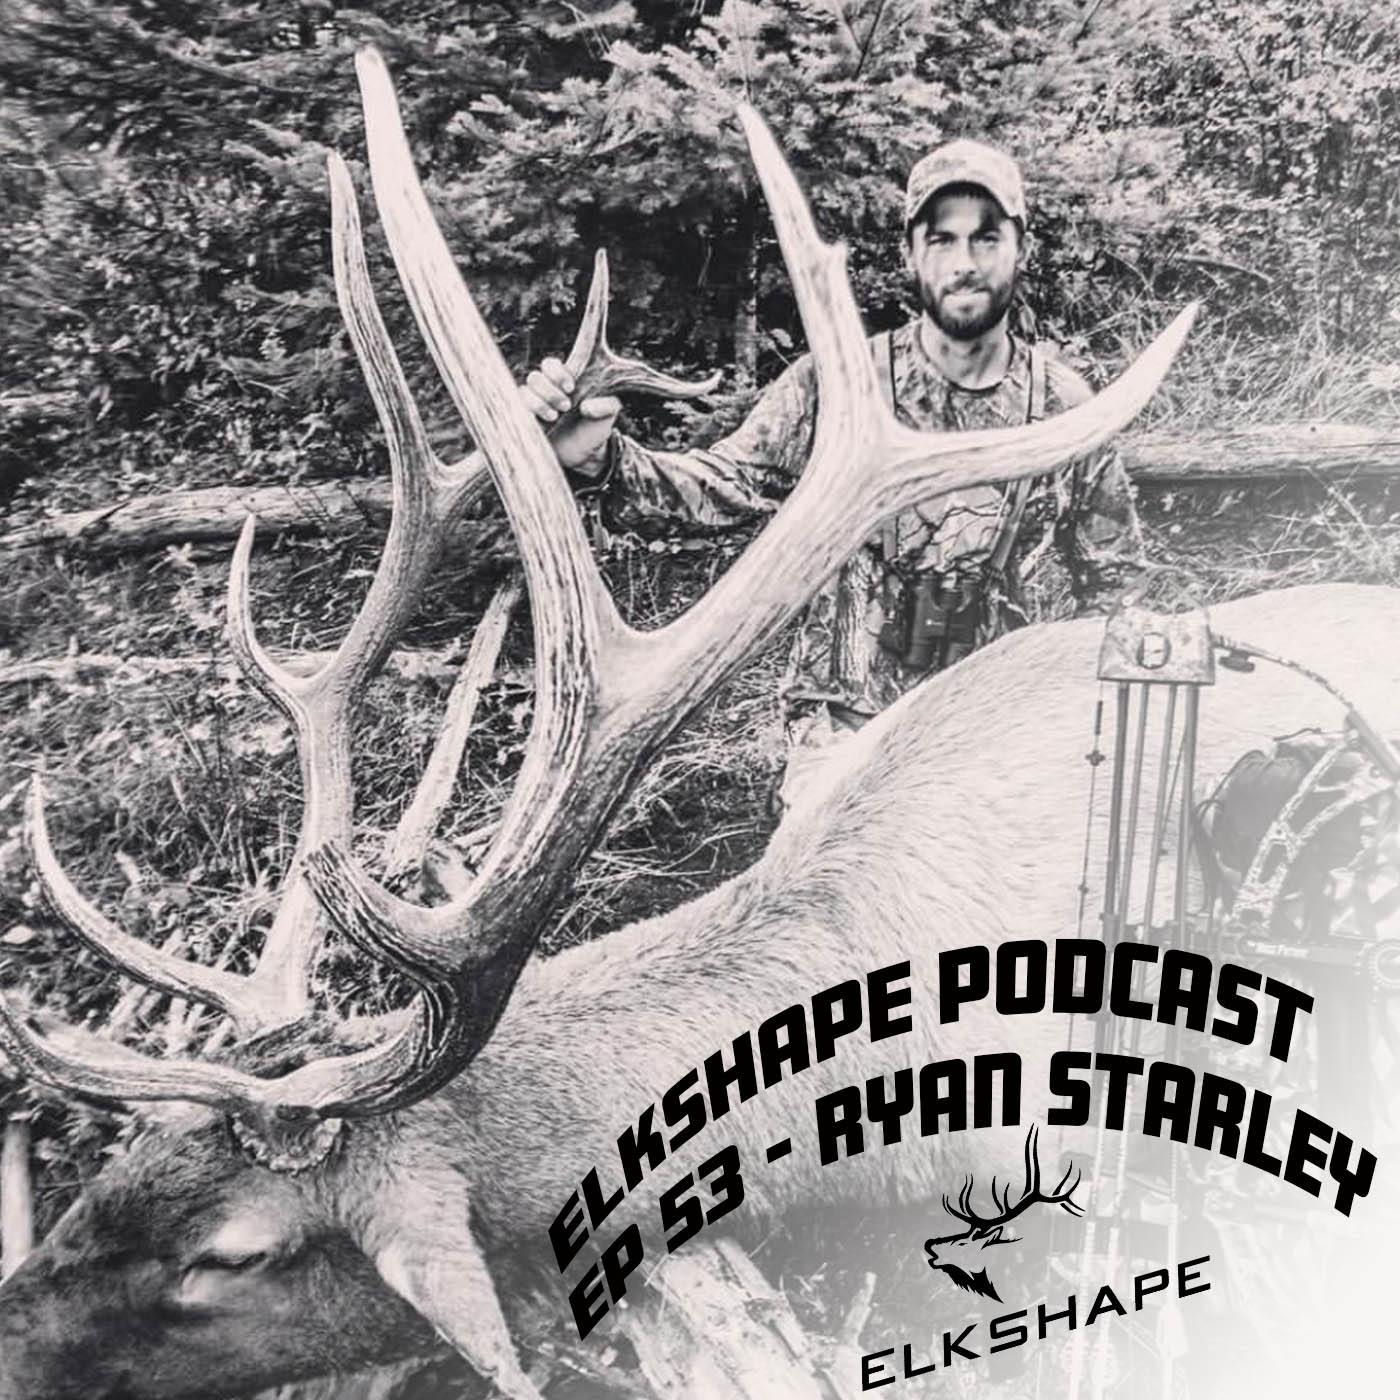 ElkShape Podcast EP 53 - Ryan Starley of Rogue Wild